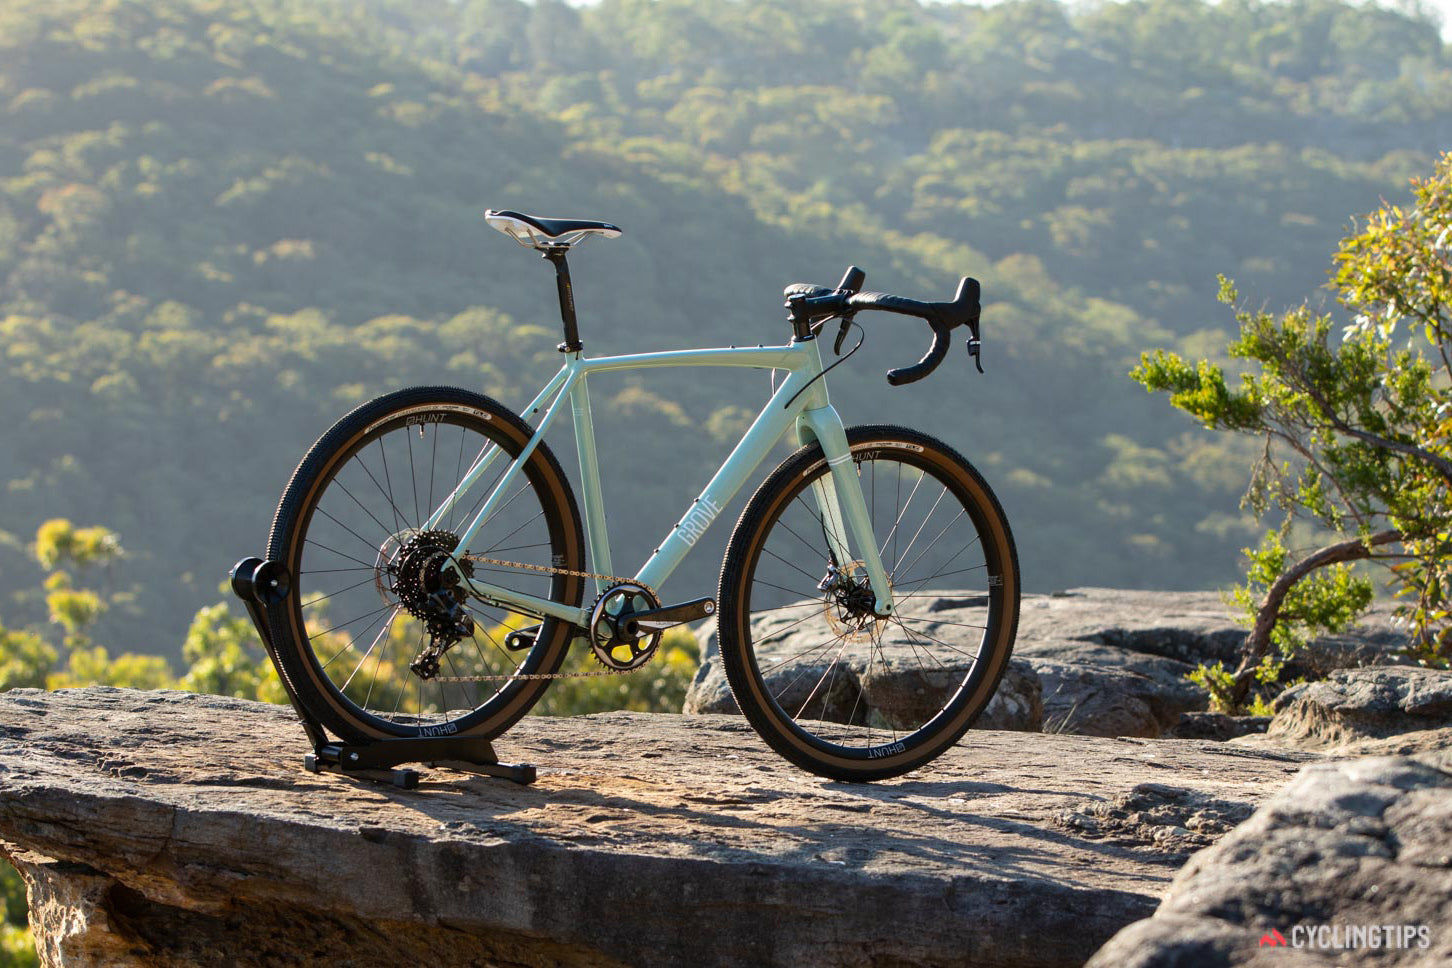 R.A.D REVIEW: Cycling Tips Test The Grove R.A.D Force LTD